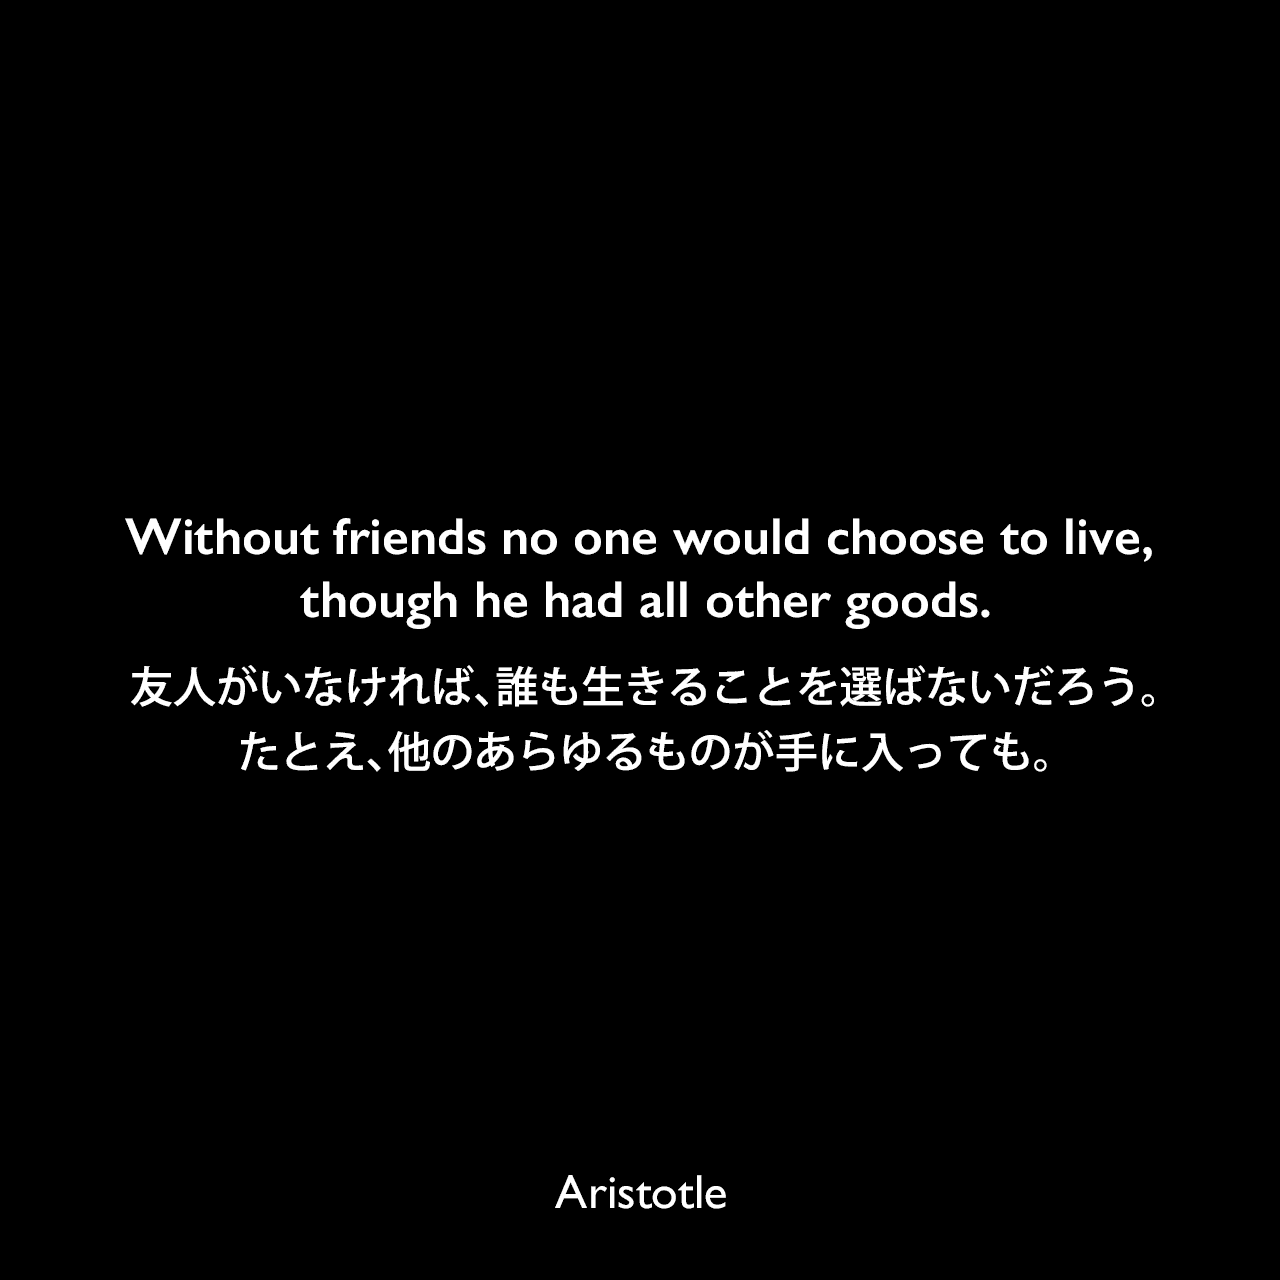 Without friends no one would choose to live, though he had all other goods.友人がいなければ、誰も生きることを選ばないだろう。たとえ、他のあらゆるものが手に入っても。- アリストテレスの著書「ニコマコス倫理学」よりAristotle